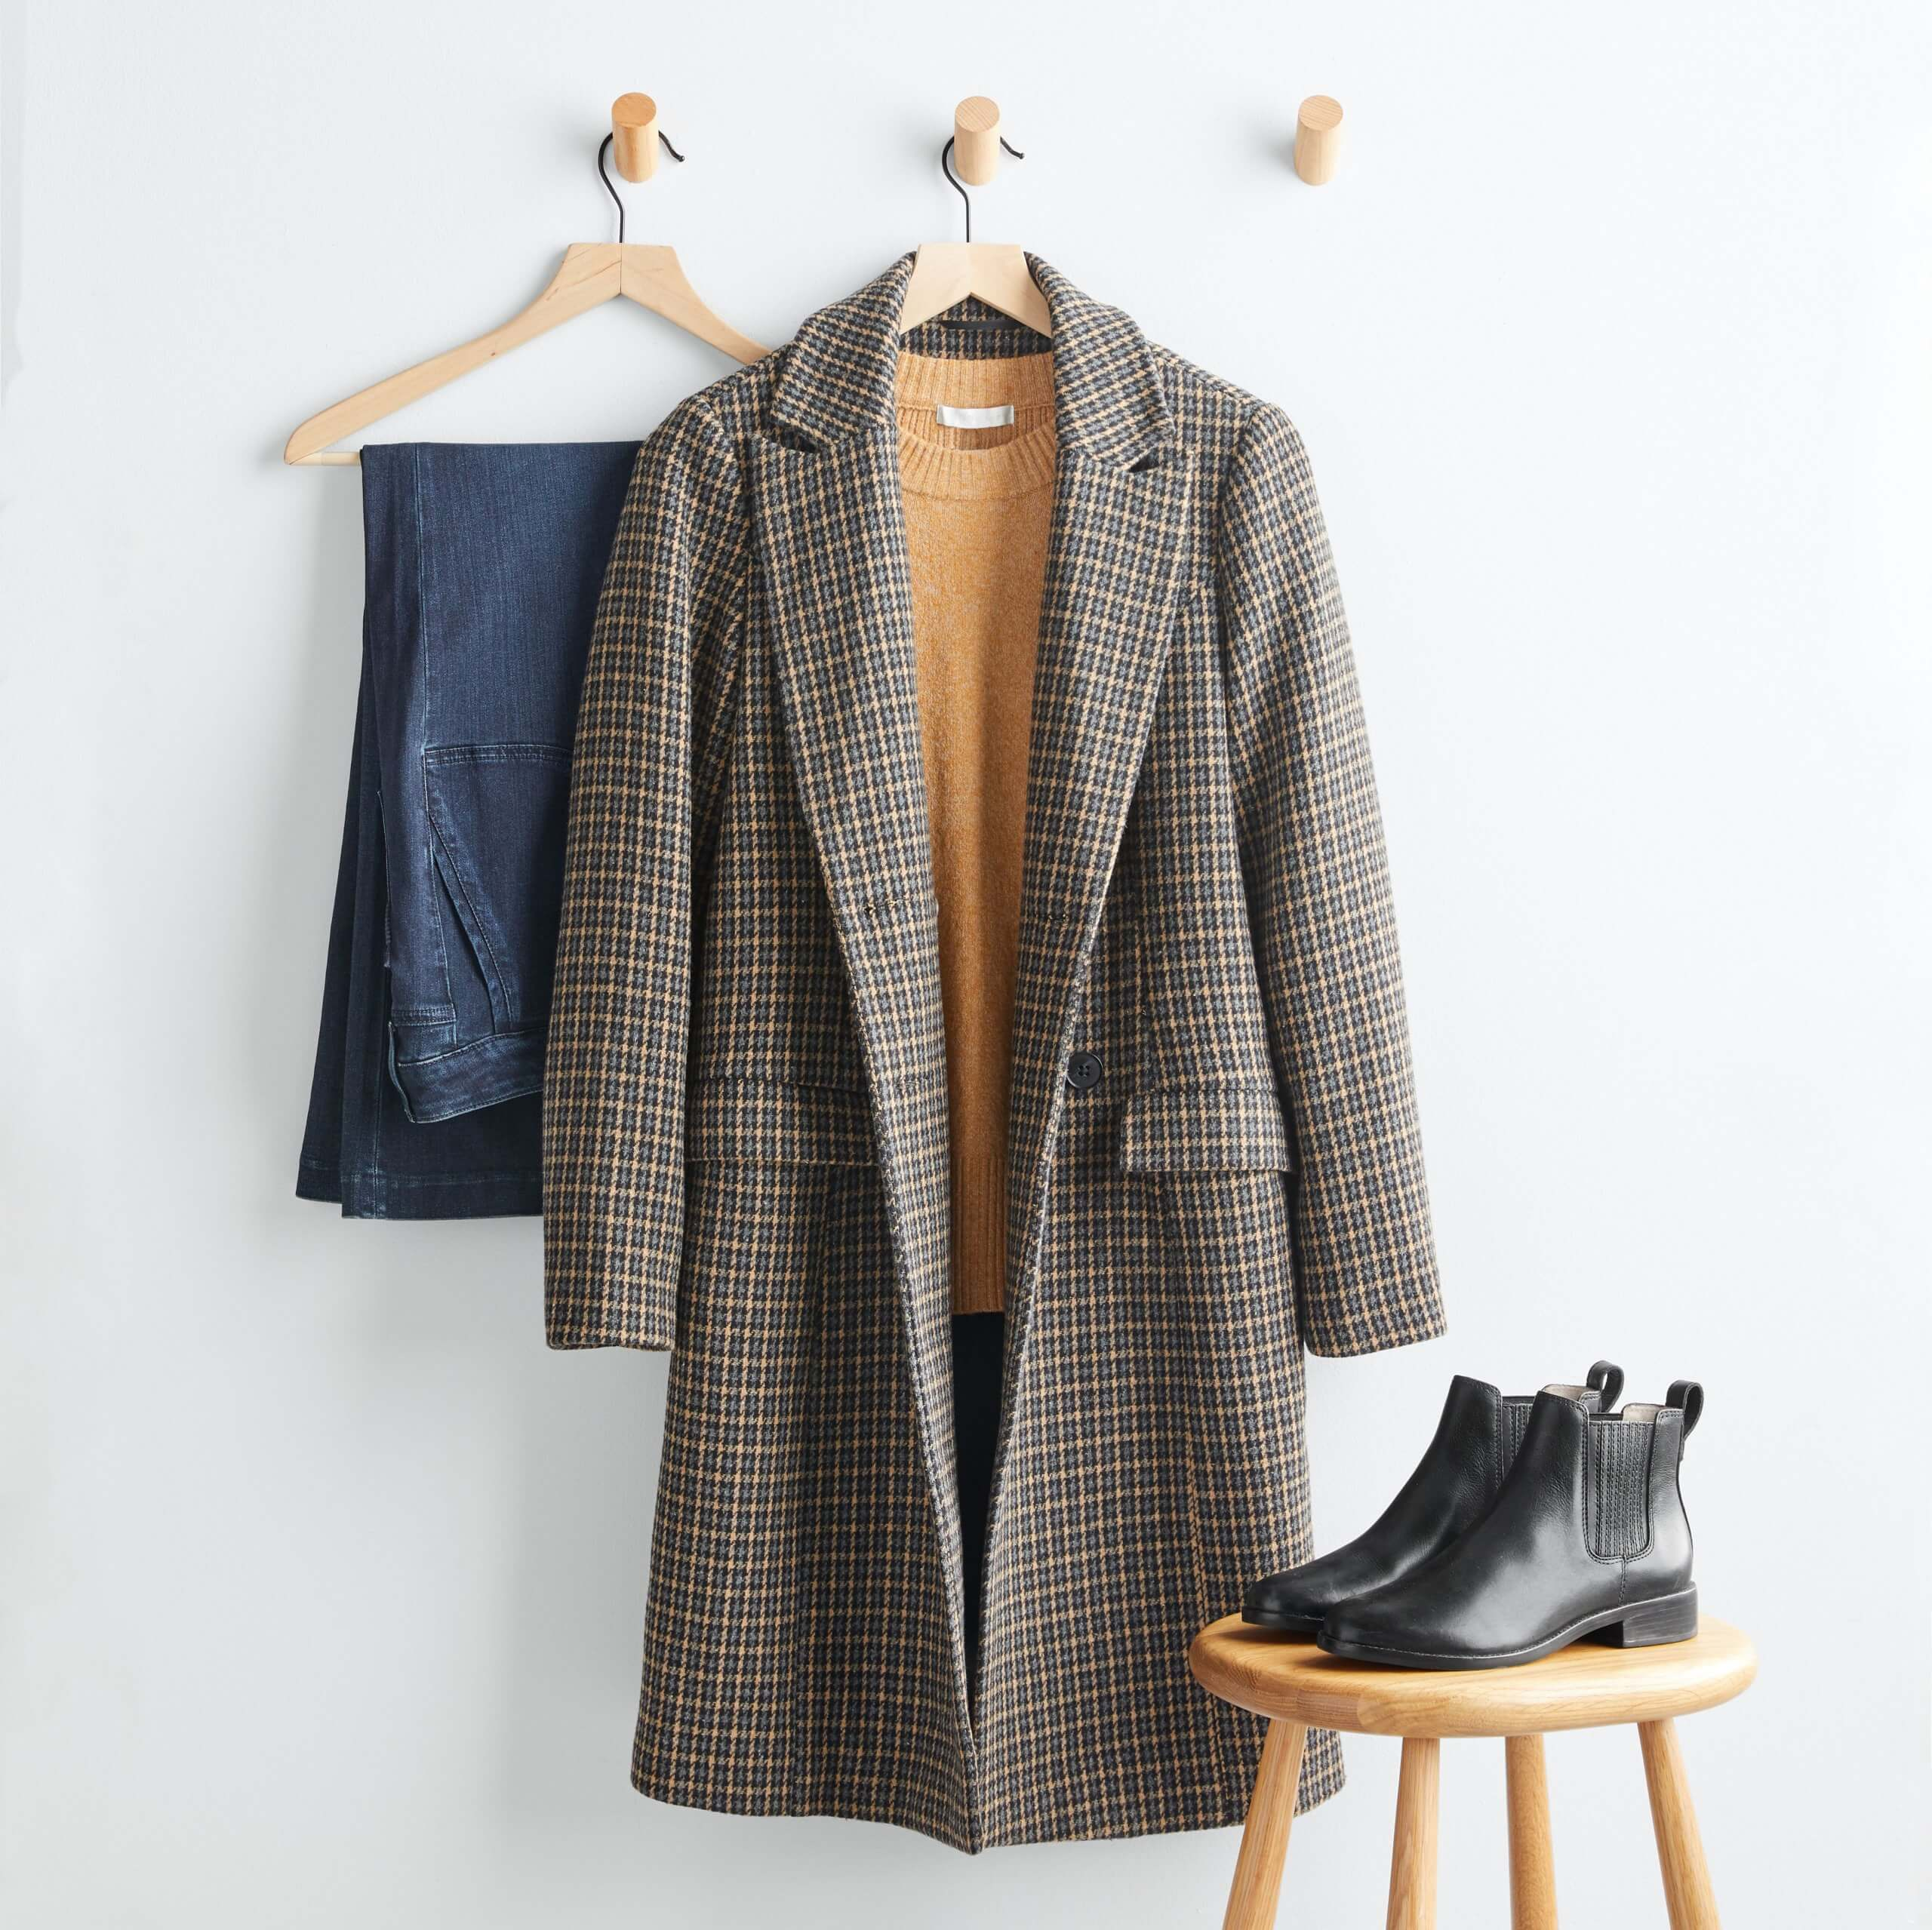 Stitch Fix Women's outfit featuring brown plaid coat over mustard sweater hanging on wooden hanger, dark wash jeans on wooden hanger next to black leather booties on wooden stool.